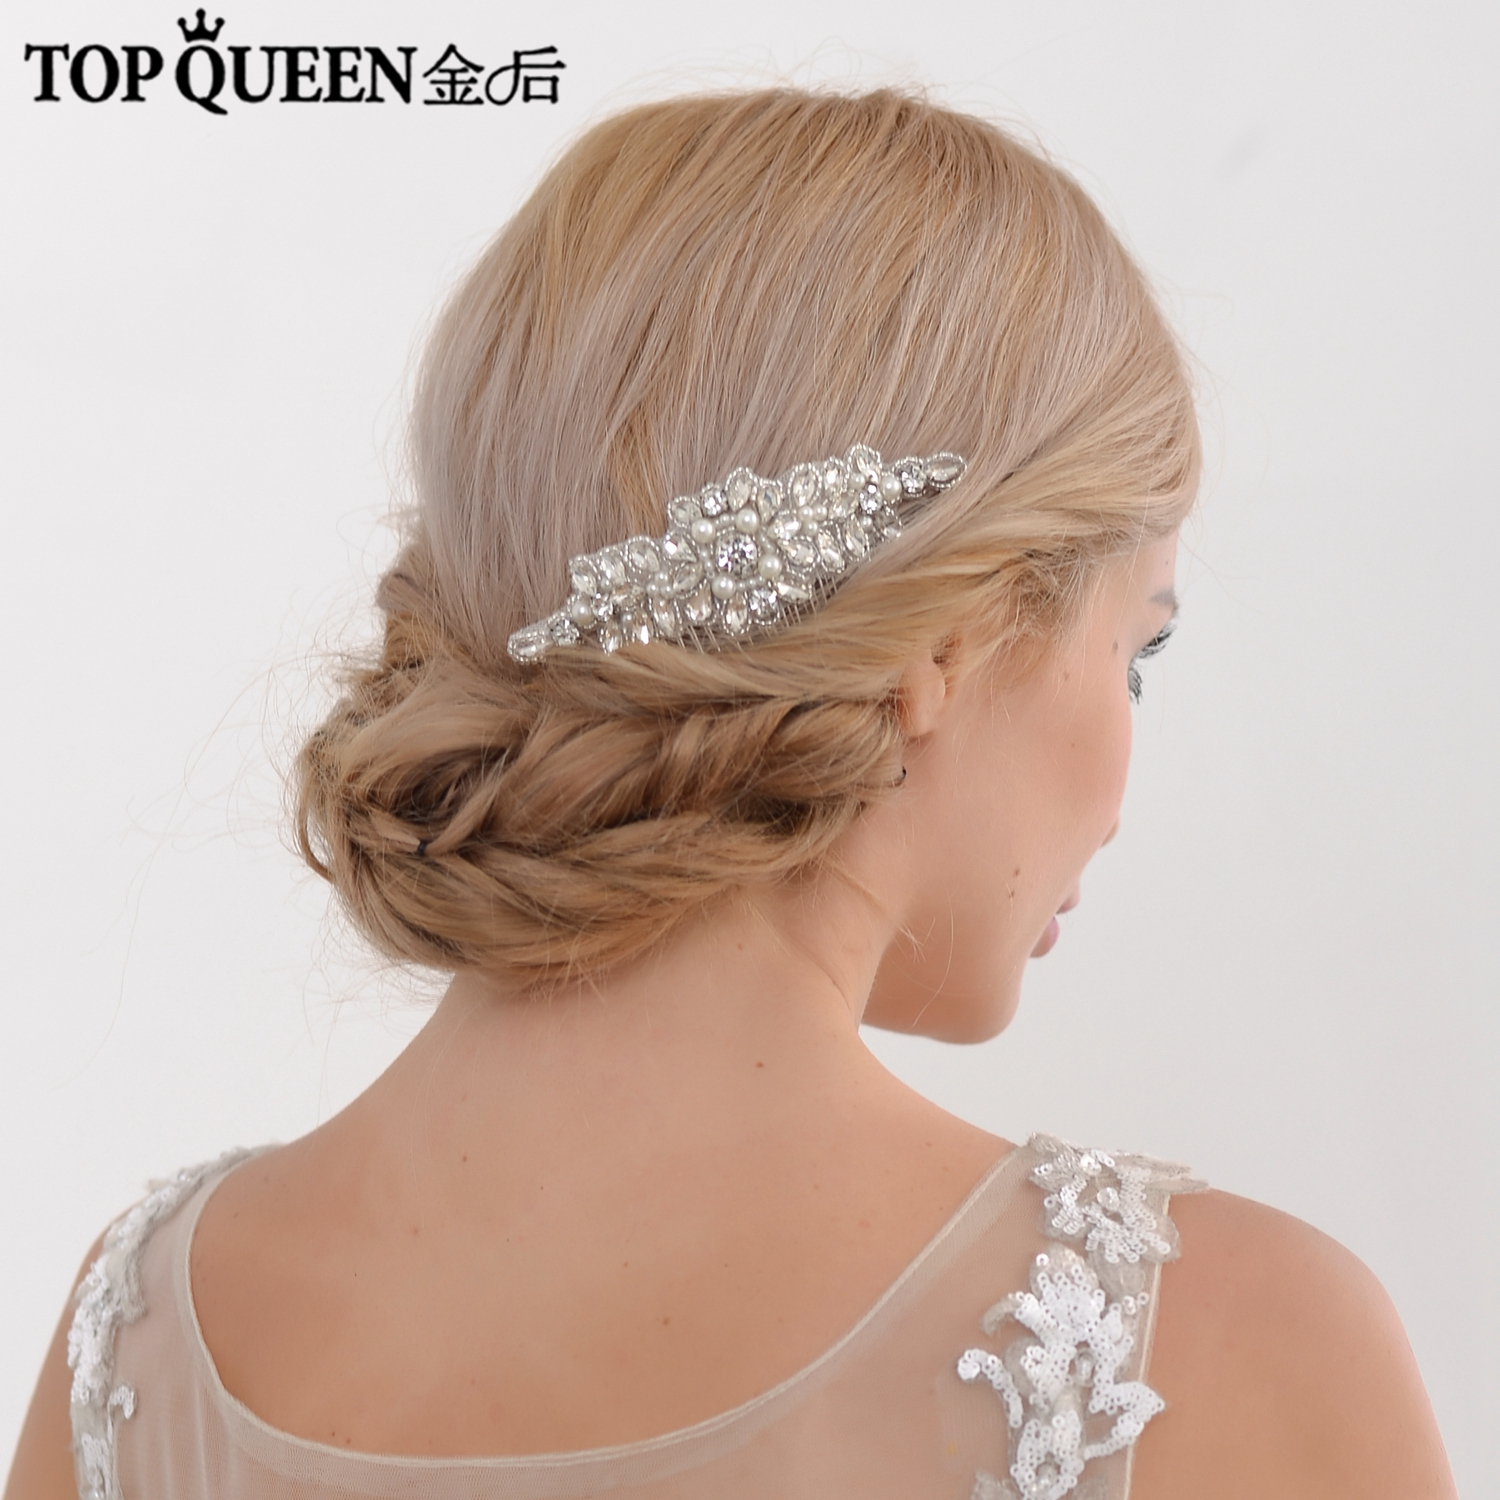 TOPQUEEN H270 Fashion Diamond Headbands Hair Accessories Comb Hairdress With Crystal Bridal Comb Wedding Bridal Headbands